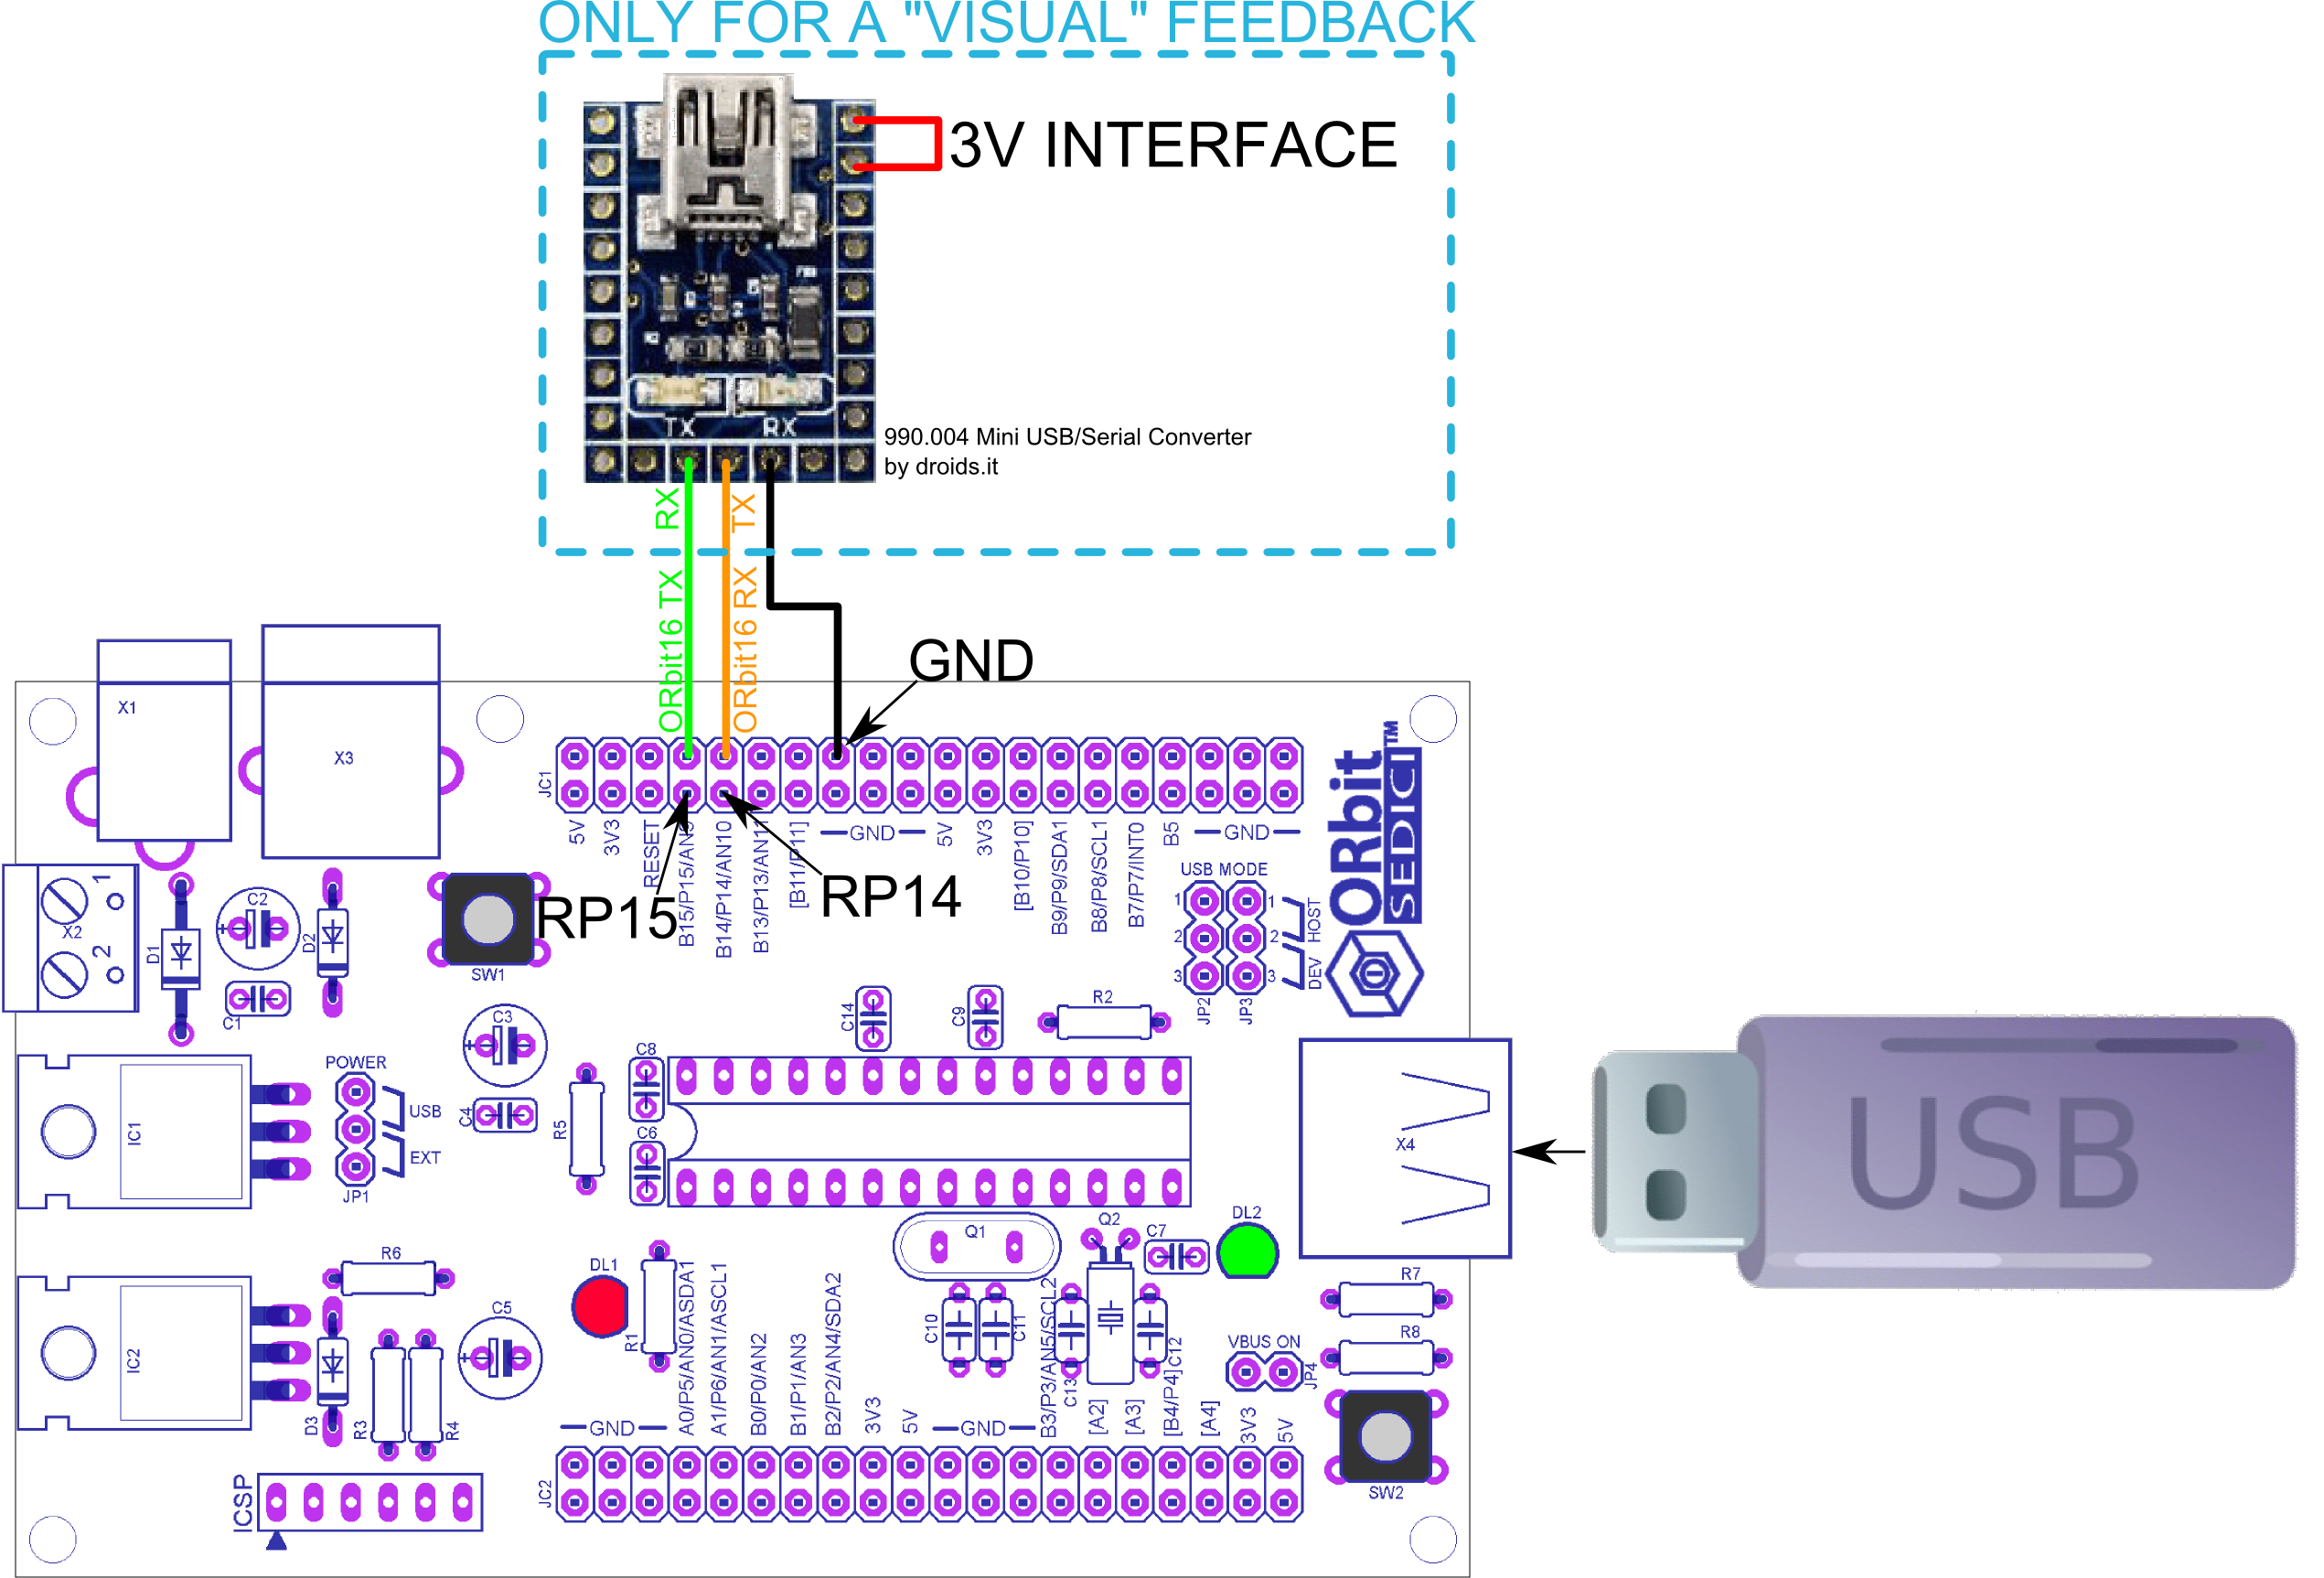 Stm32f4 usb otg schematic search for wiring diagrams usb host interfacing to an usb mouse orbit16 orbit32 rh settorezero com stm32 usb host schematic usb cable wire color diagram asfbconference2016 Images